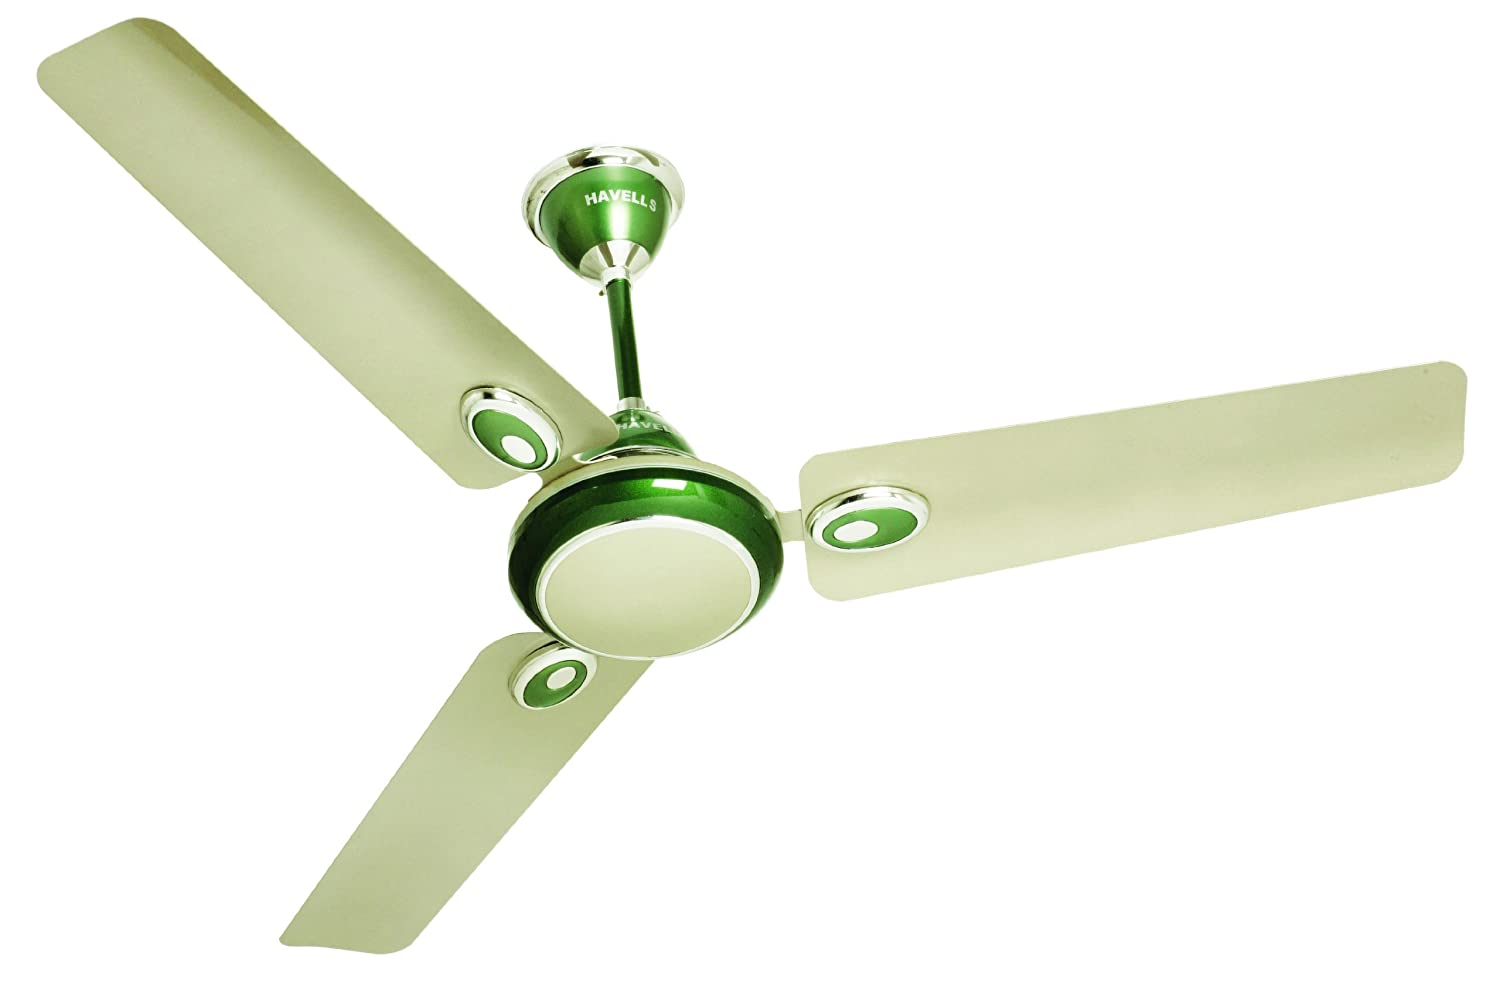 Buy havells fusion 1200mm ceiling fan oasis green online at low buy havells fusion 1200mm ceiling fan oasis green online at low prices in india amazon mozeypictures Image collections